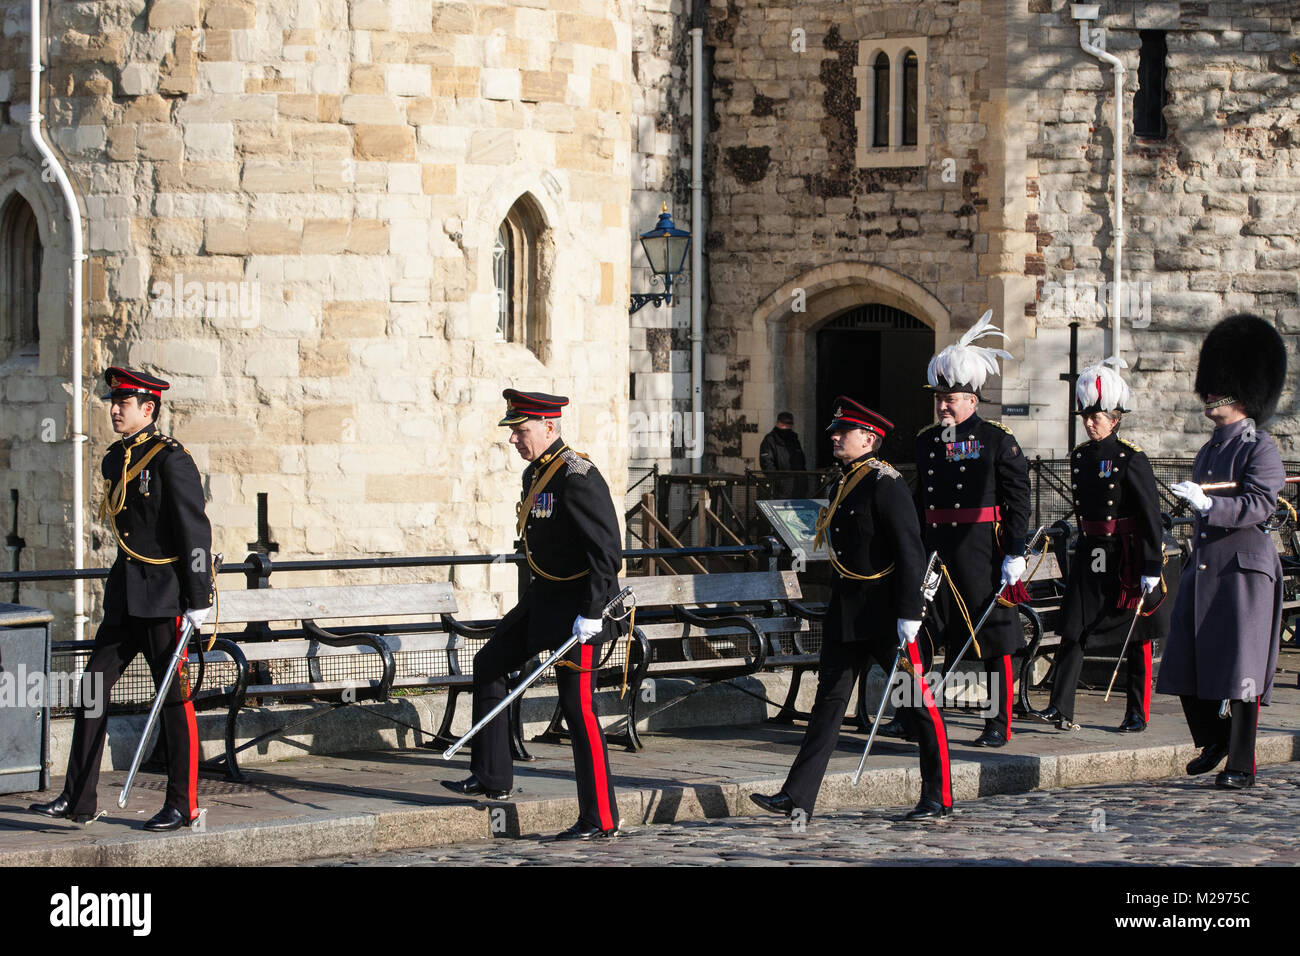 London, UK. 6th Feb, 2018. Dignitaries leave the Tower of London following a 62-gun salute by the Honourable Artillery - Stock Image